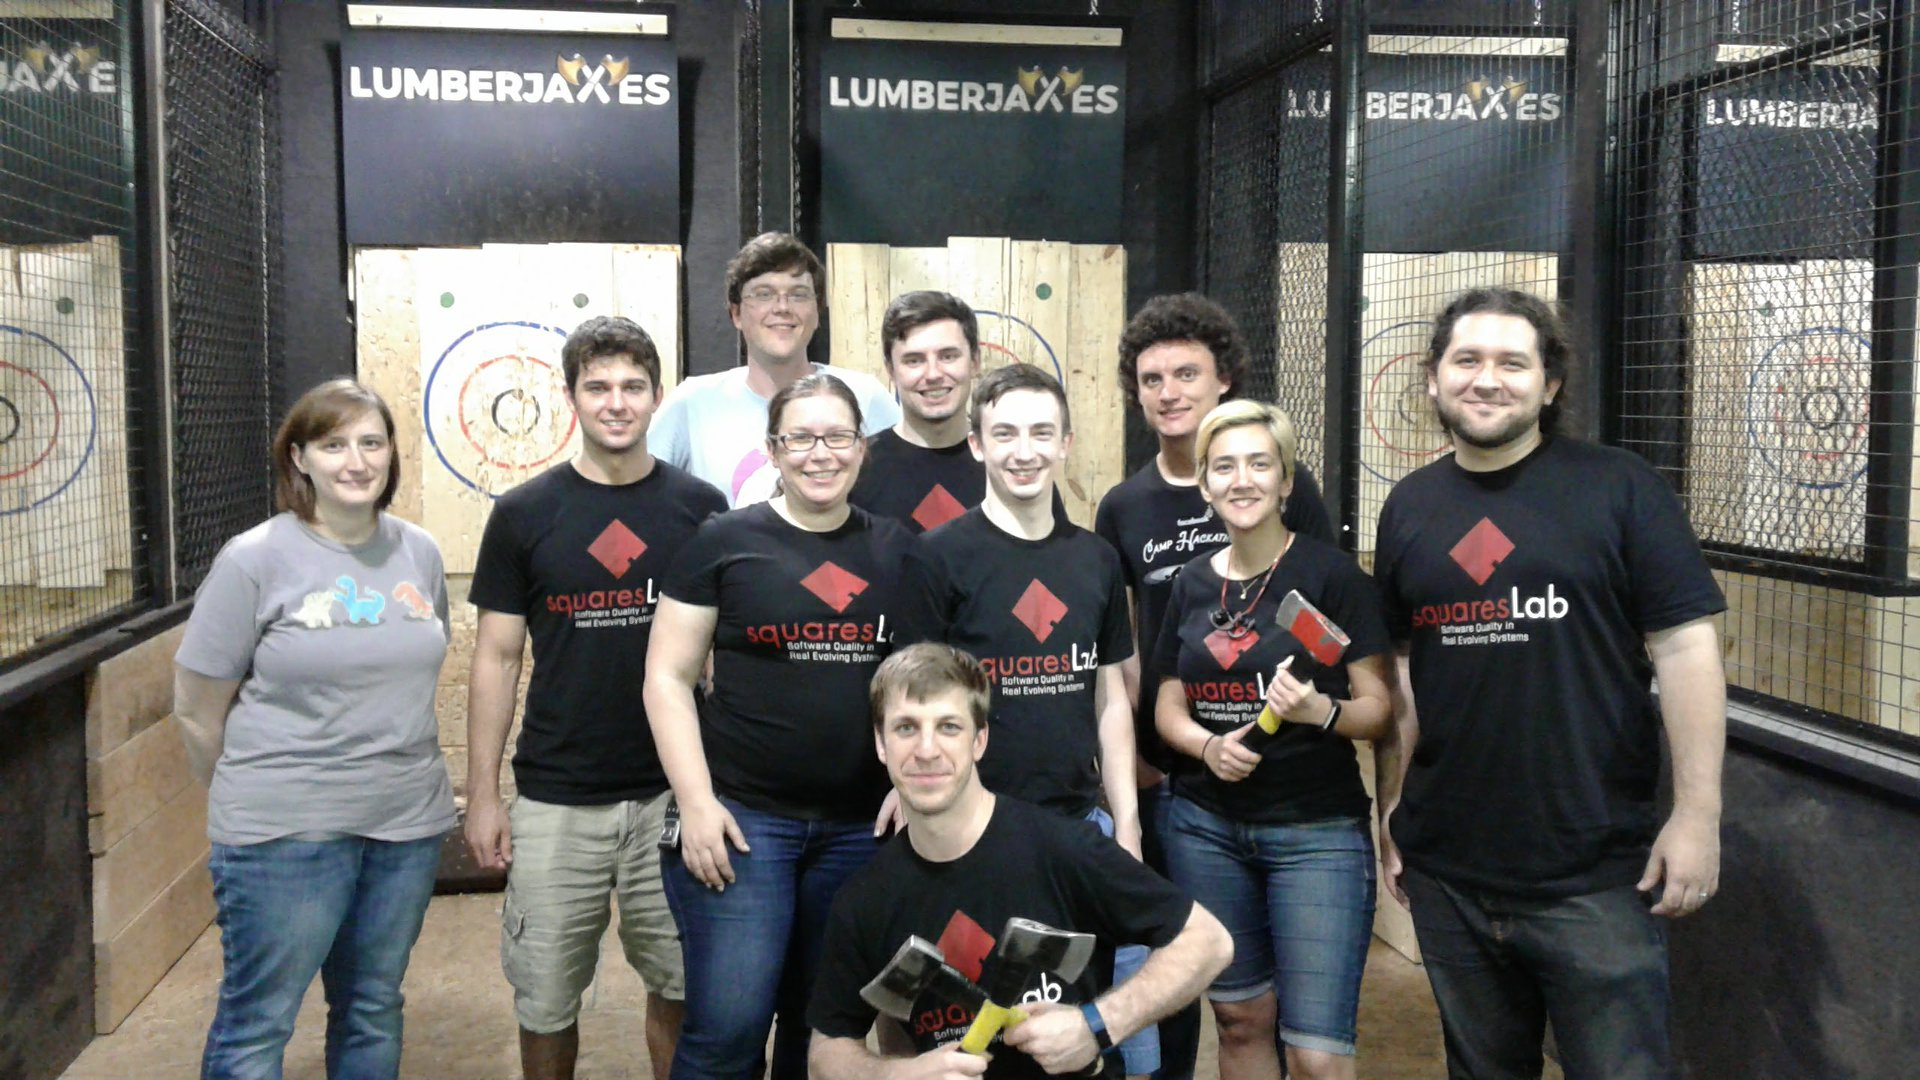 squaresLab in our squaresLab t-shirts after an axe throwing social event